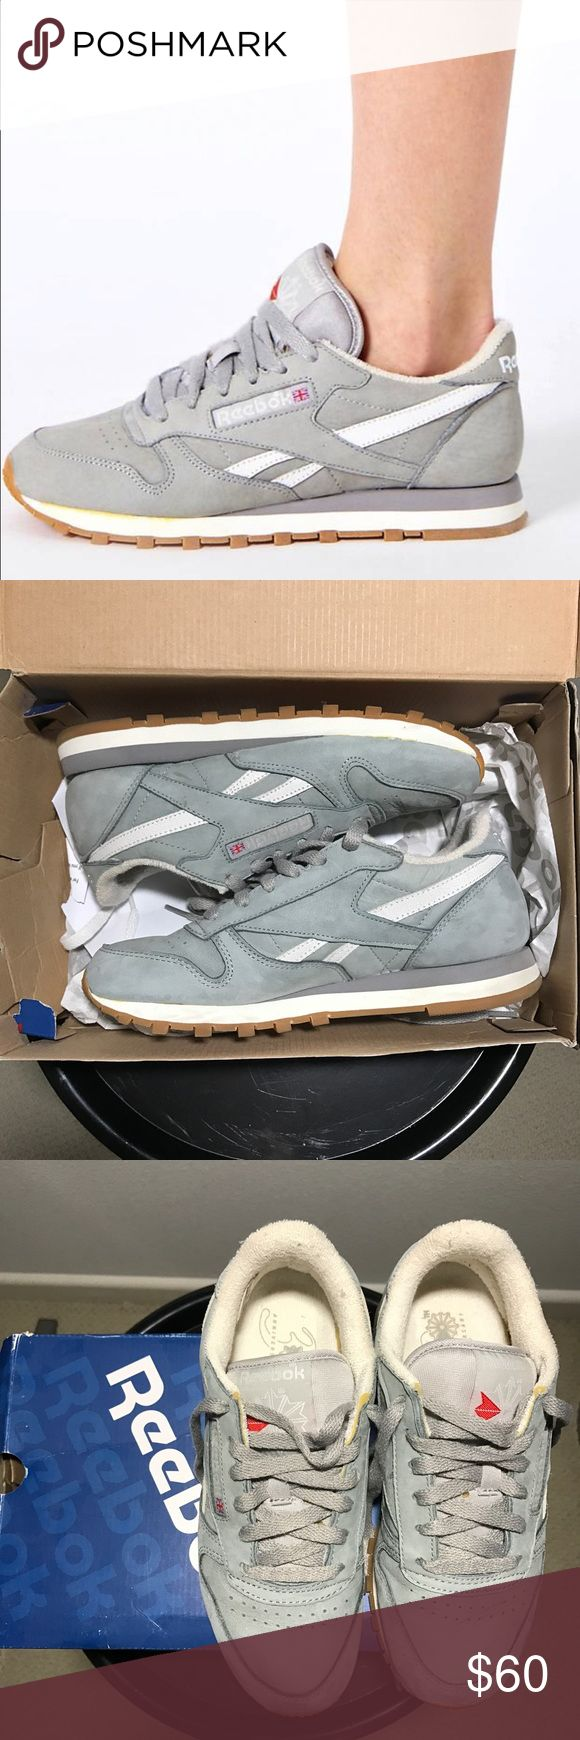 Used Reebok Classic Vintage Grey Trainers Used Reebok Classic Vintage Grey Trainers  DETAILS Brand: Reebok Size: UK 3 (US 5 Women) Color: Grey Condition: Great! Barely worn. Will ship with box.   *No trades please* Reebok Shoes Sneakers